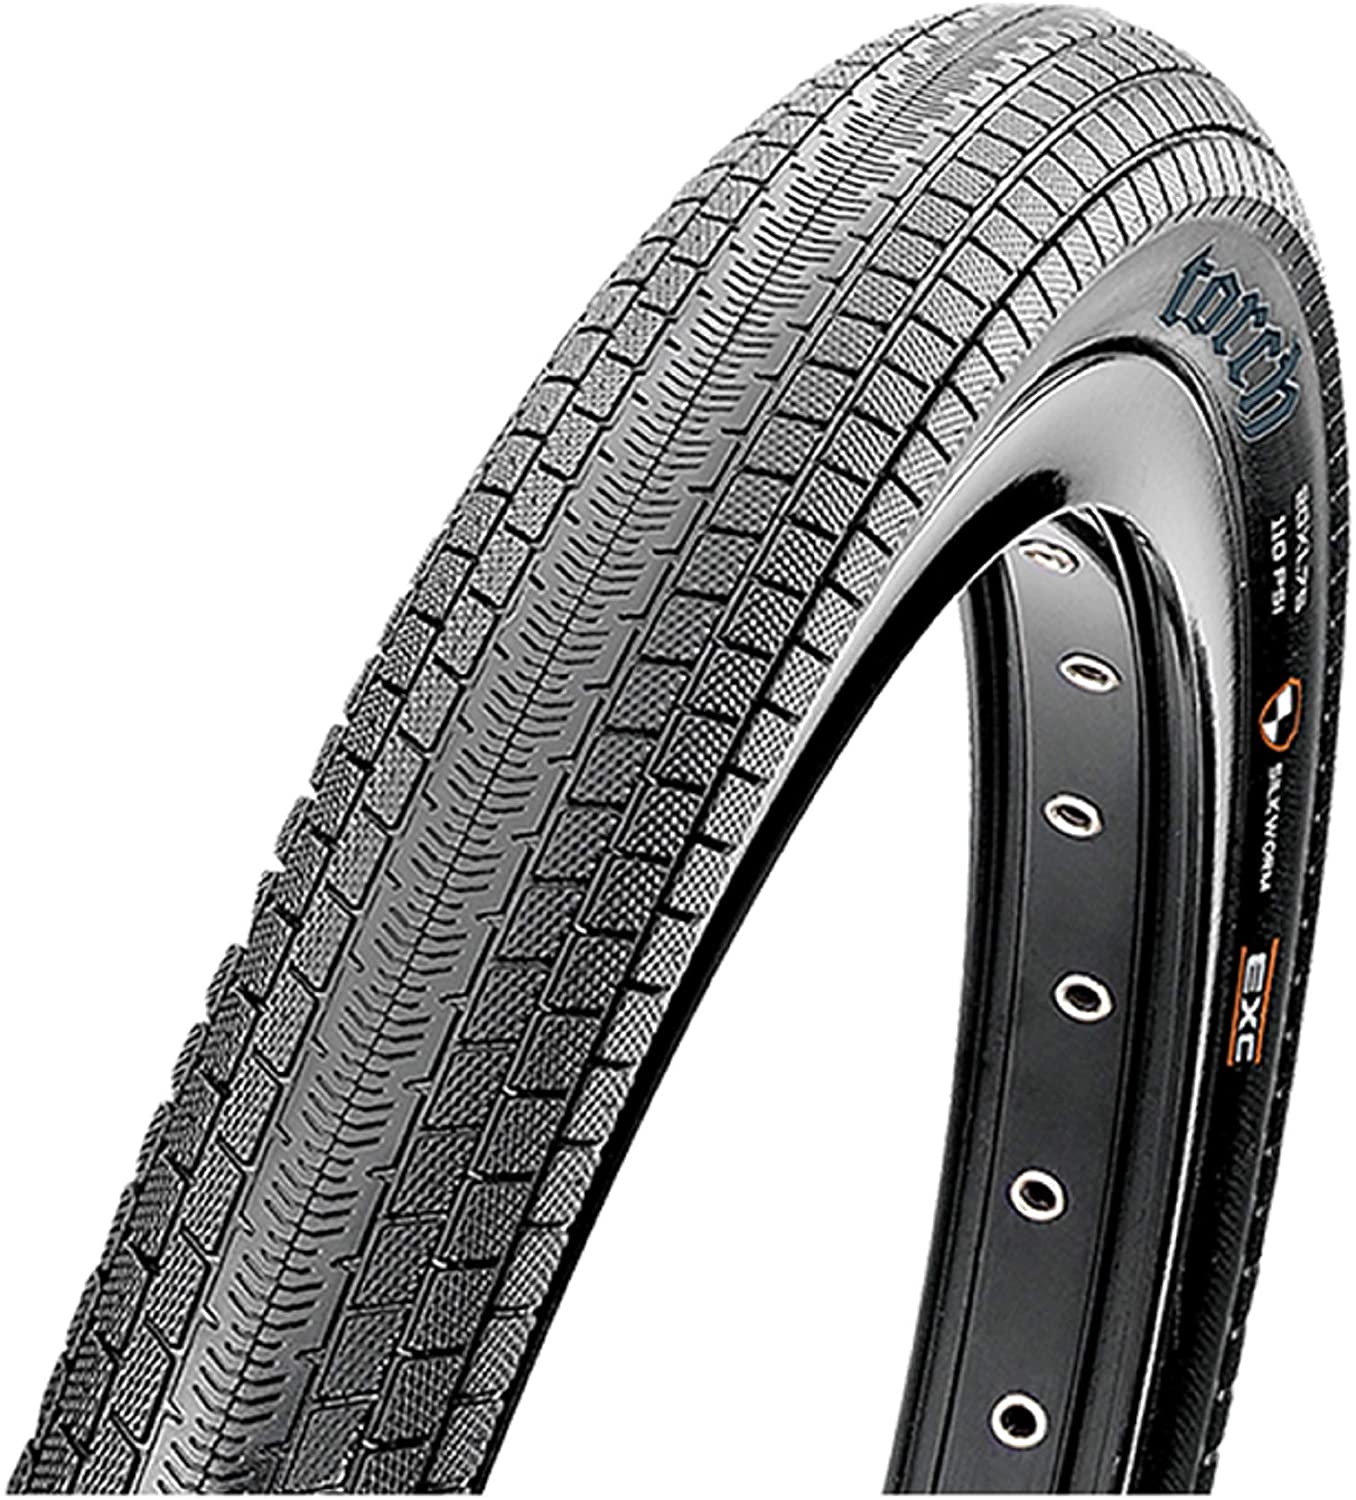 Maxxis Torch Foldable Tire 20 x 1.75 Dual Skin Wall Compound TB24755200